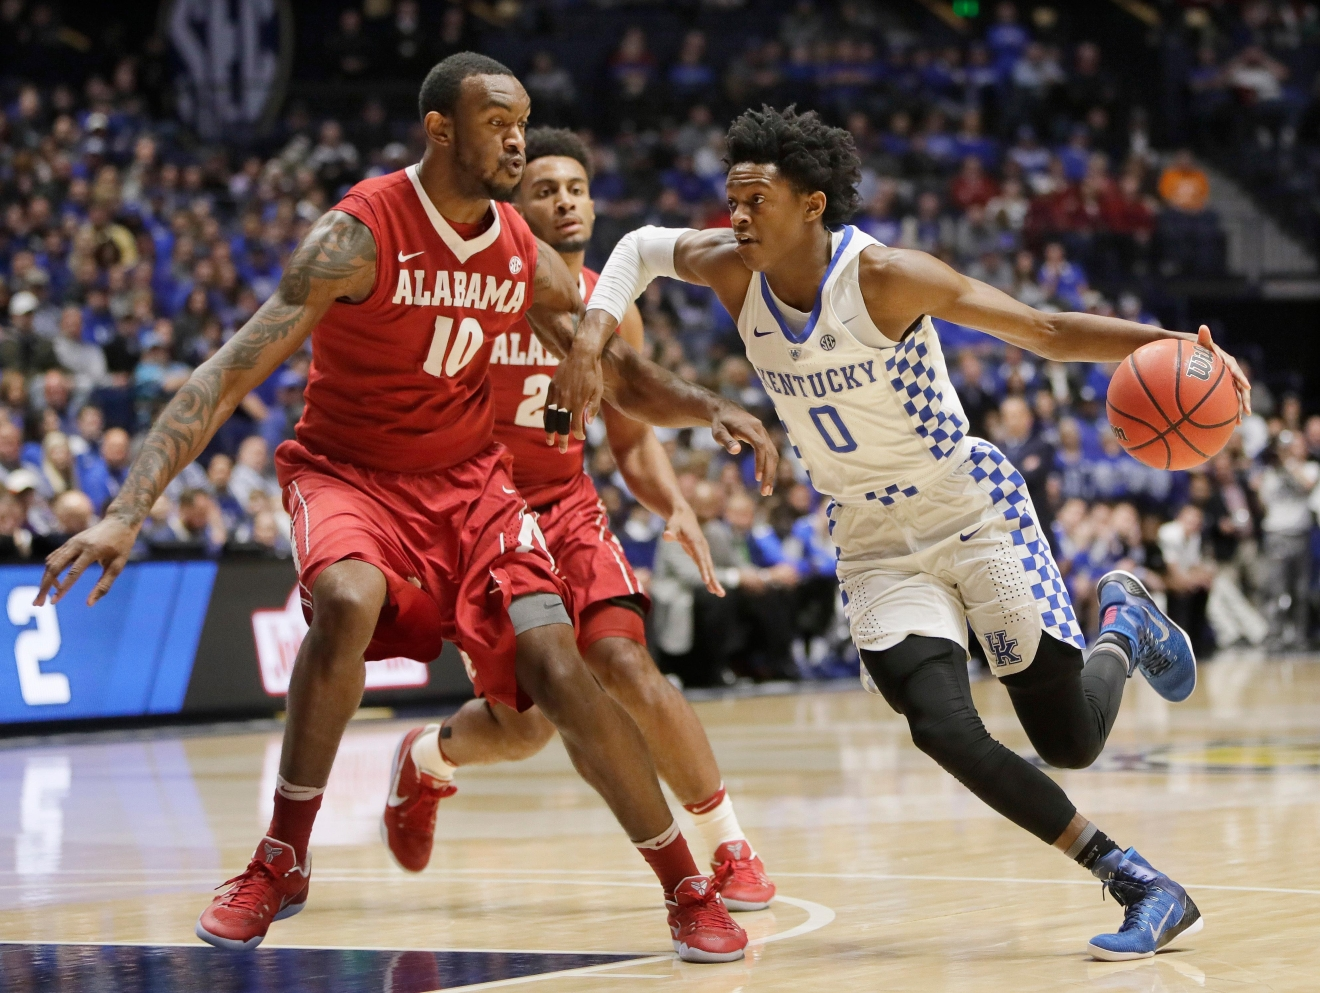 Kentucky guard De'Aaron Fox (0) drives against Alabama forward Jimmie Taylor (10) in the first half of an NCAA college basketball game in the semifinals of the Southeastern Conference tournament Saturday, March 11, 2017, in Nashville, Tenn. (AP Photo/Wade Payne)